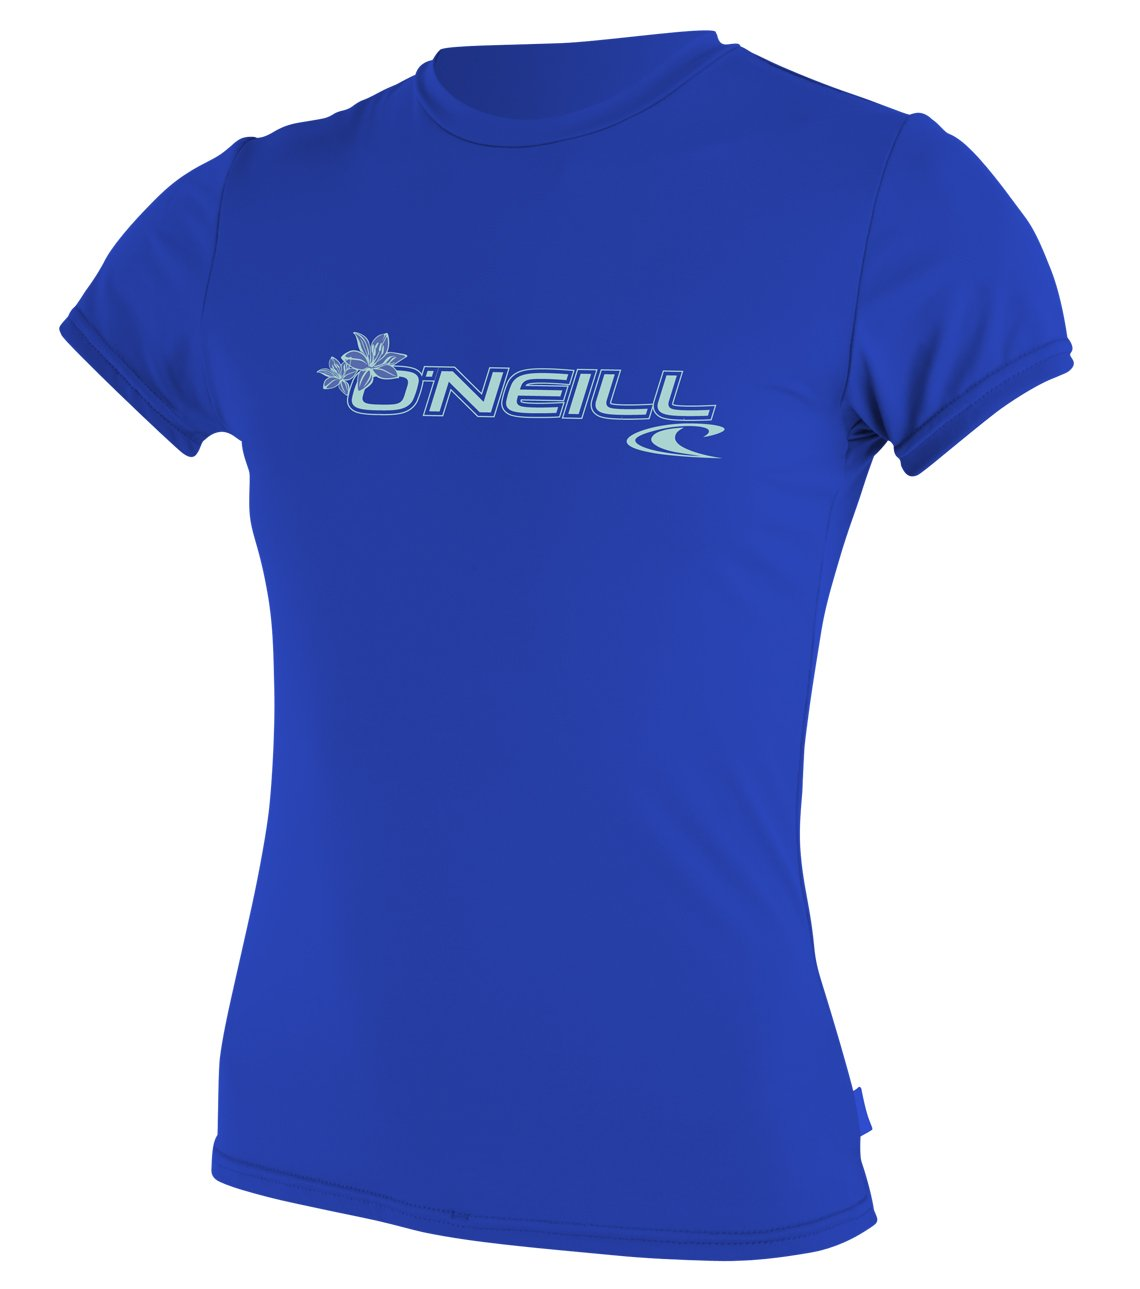 O'Neill  Women's Basic Skins Upf 50+ Short Sleeve Sun Shirt, Tahitian Blue, X-Small by O'Neill Wetsuits